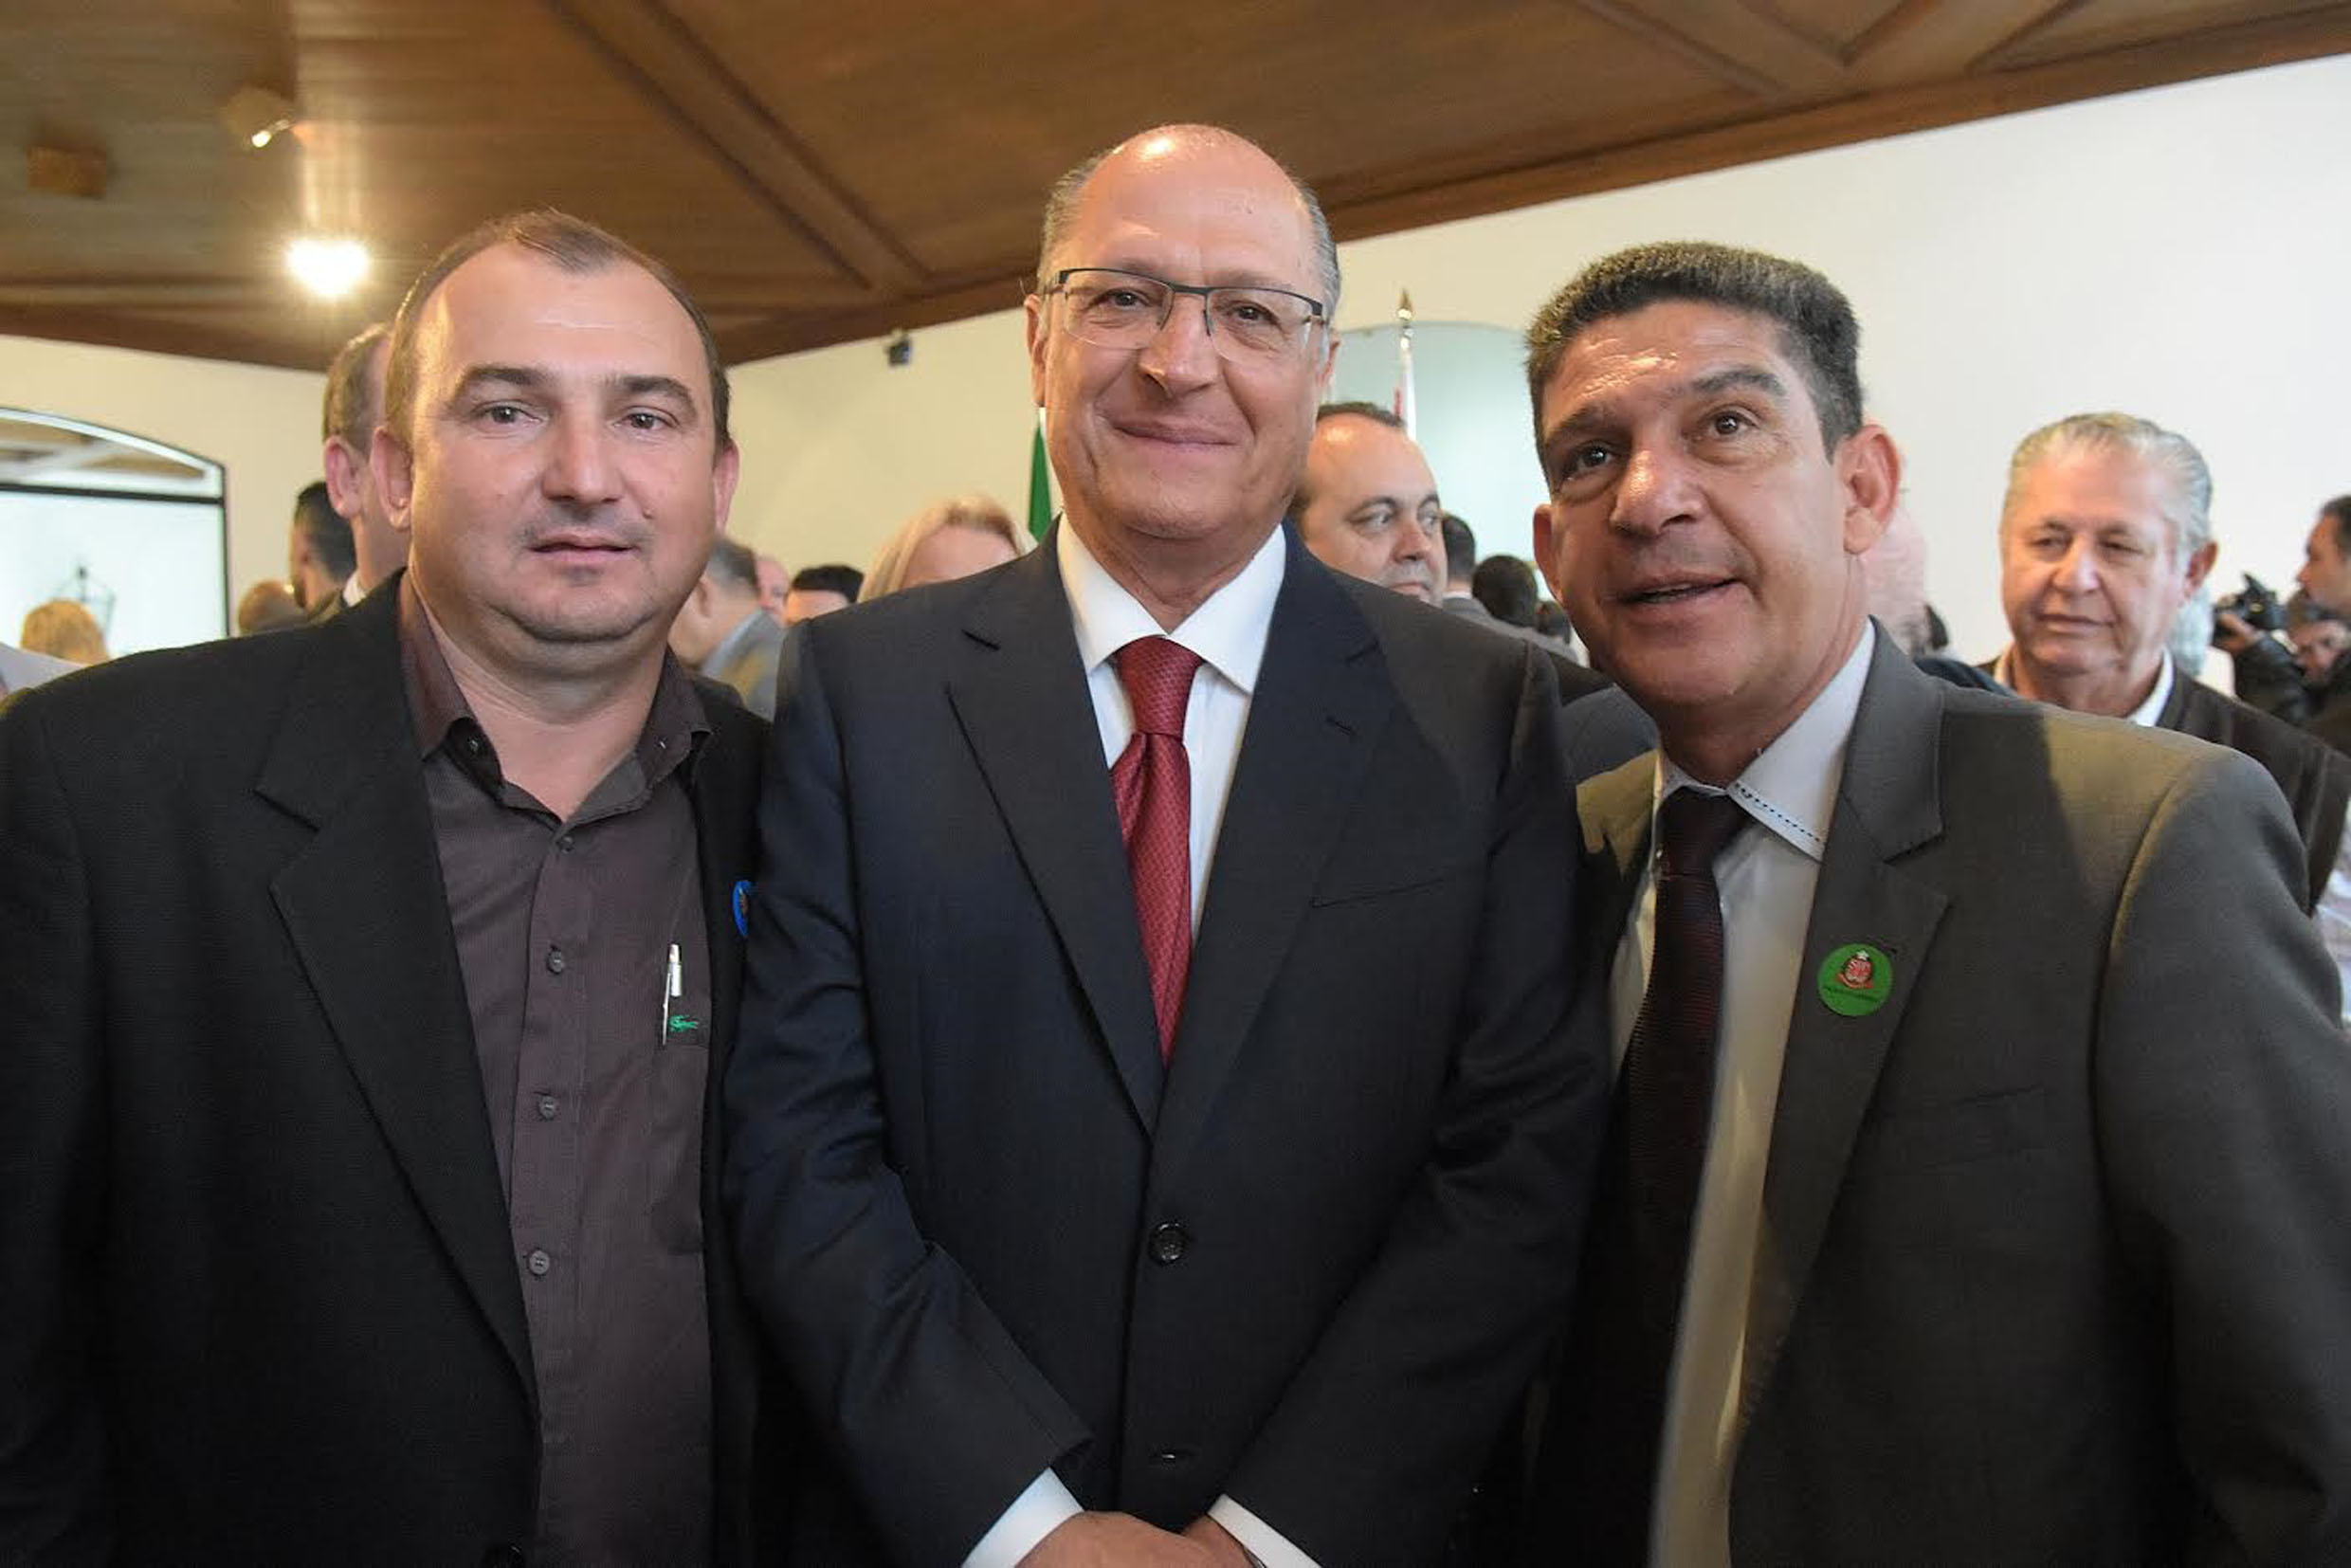 Adriano Bonilha, Alckmin e Gileno Gomes<a style='float:right' href='https://www3.al.sp.gov.br/repositorio/noticia/N-06-2016/fg191377.jpg' target=_blank><img src='/_img/material-file-download-white.png' width='14px' alt='Clique para baixar a imagem'></a>